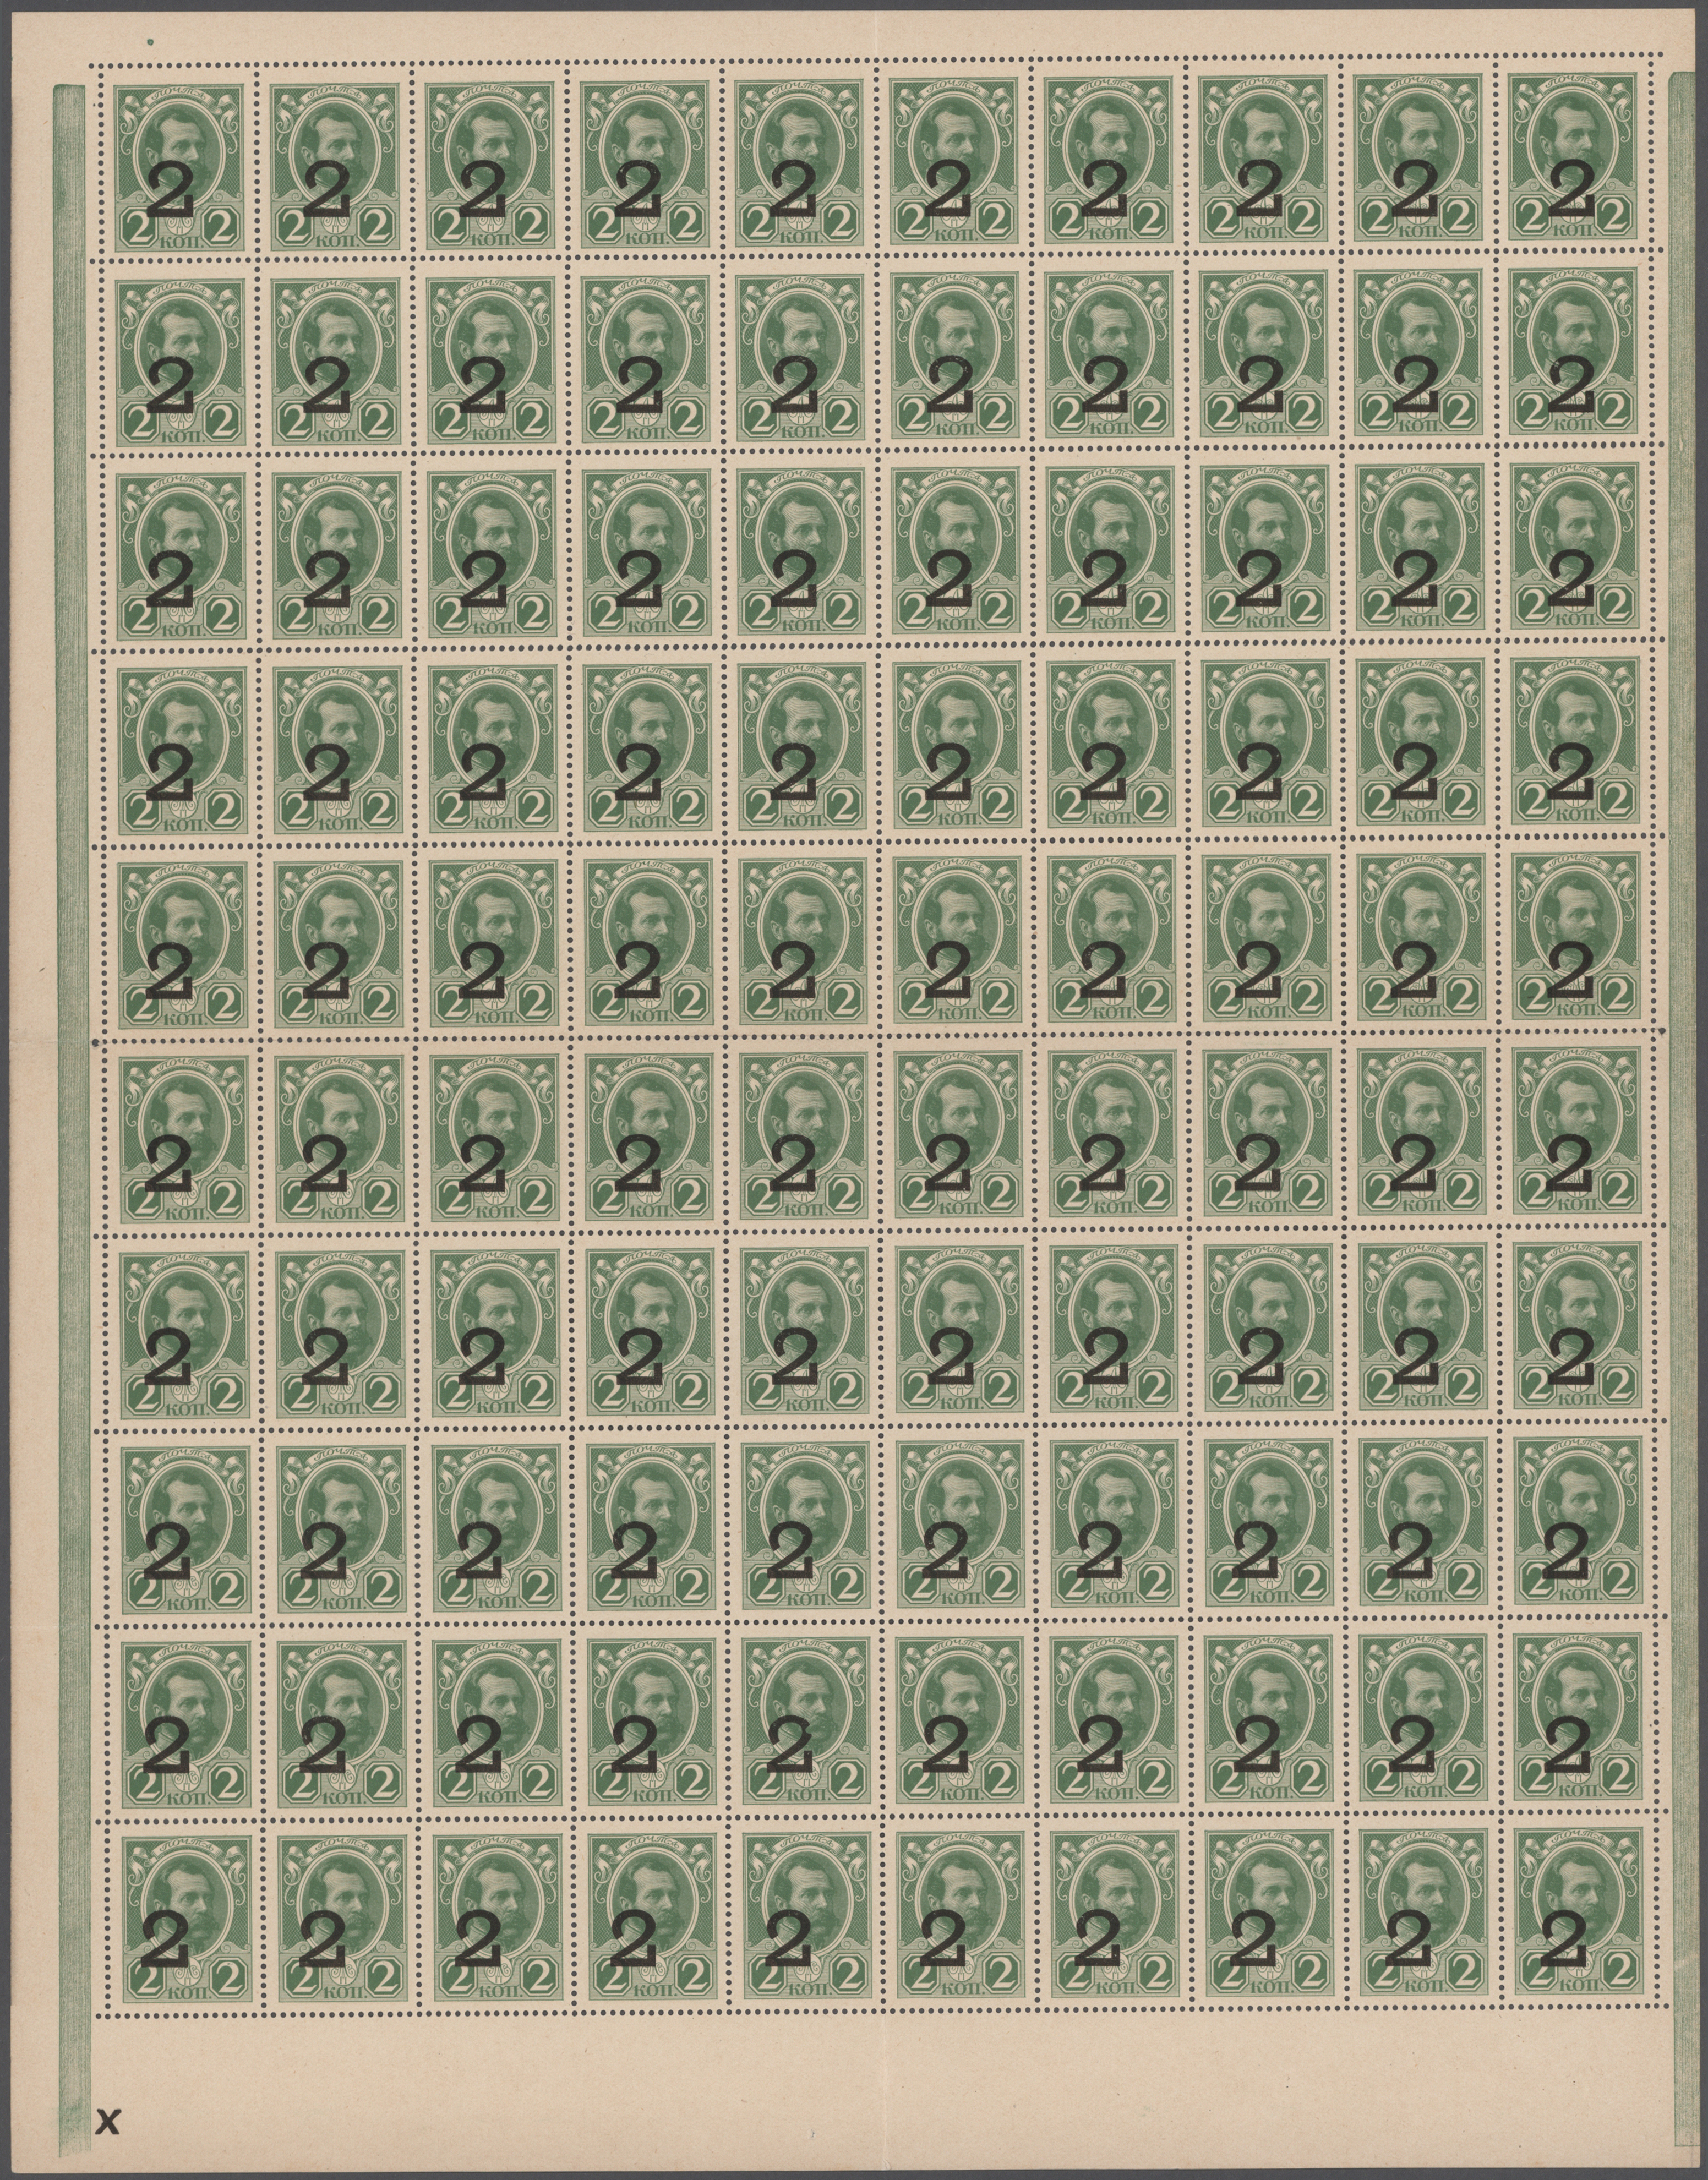 Lot 00631 - Russia / Russland | Banknoten  -  Auktionshaus Christoph Gärtner GmbH & Co. KG Sale #48 The Banknotes